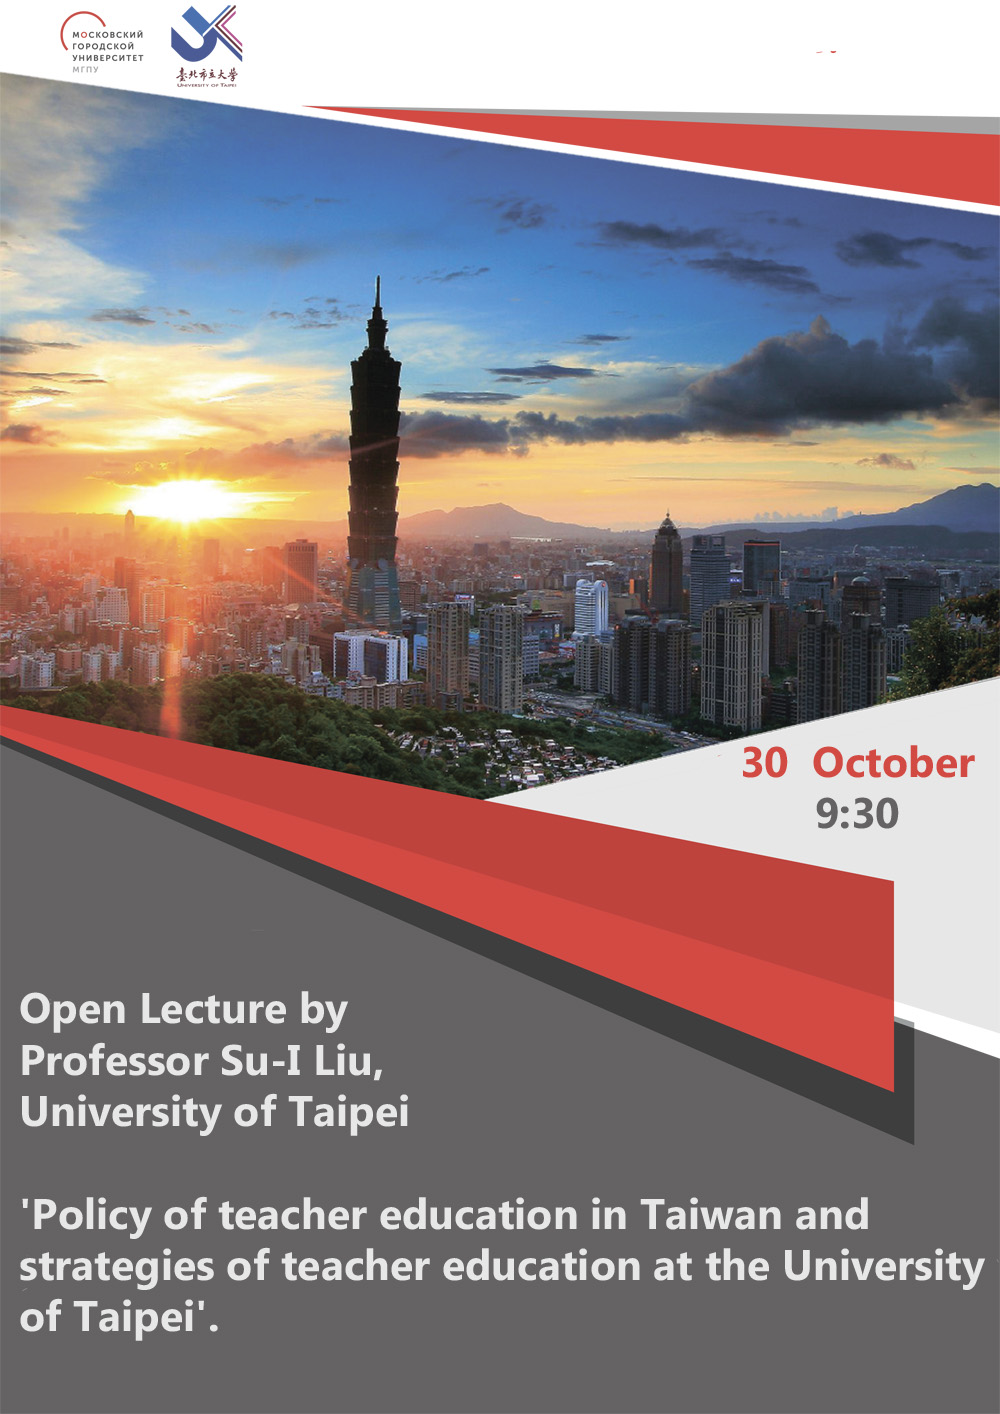 Open lecture by Professor Su-I Liu, University of Taipei